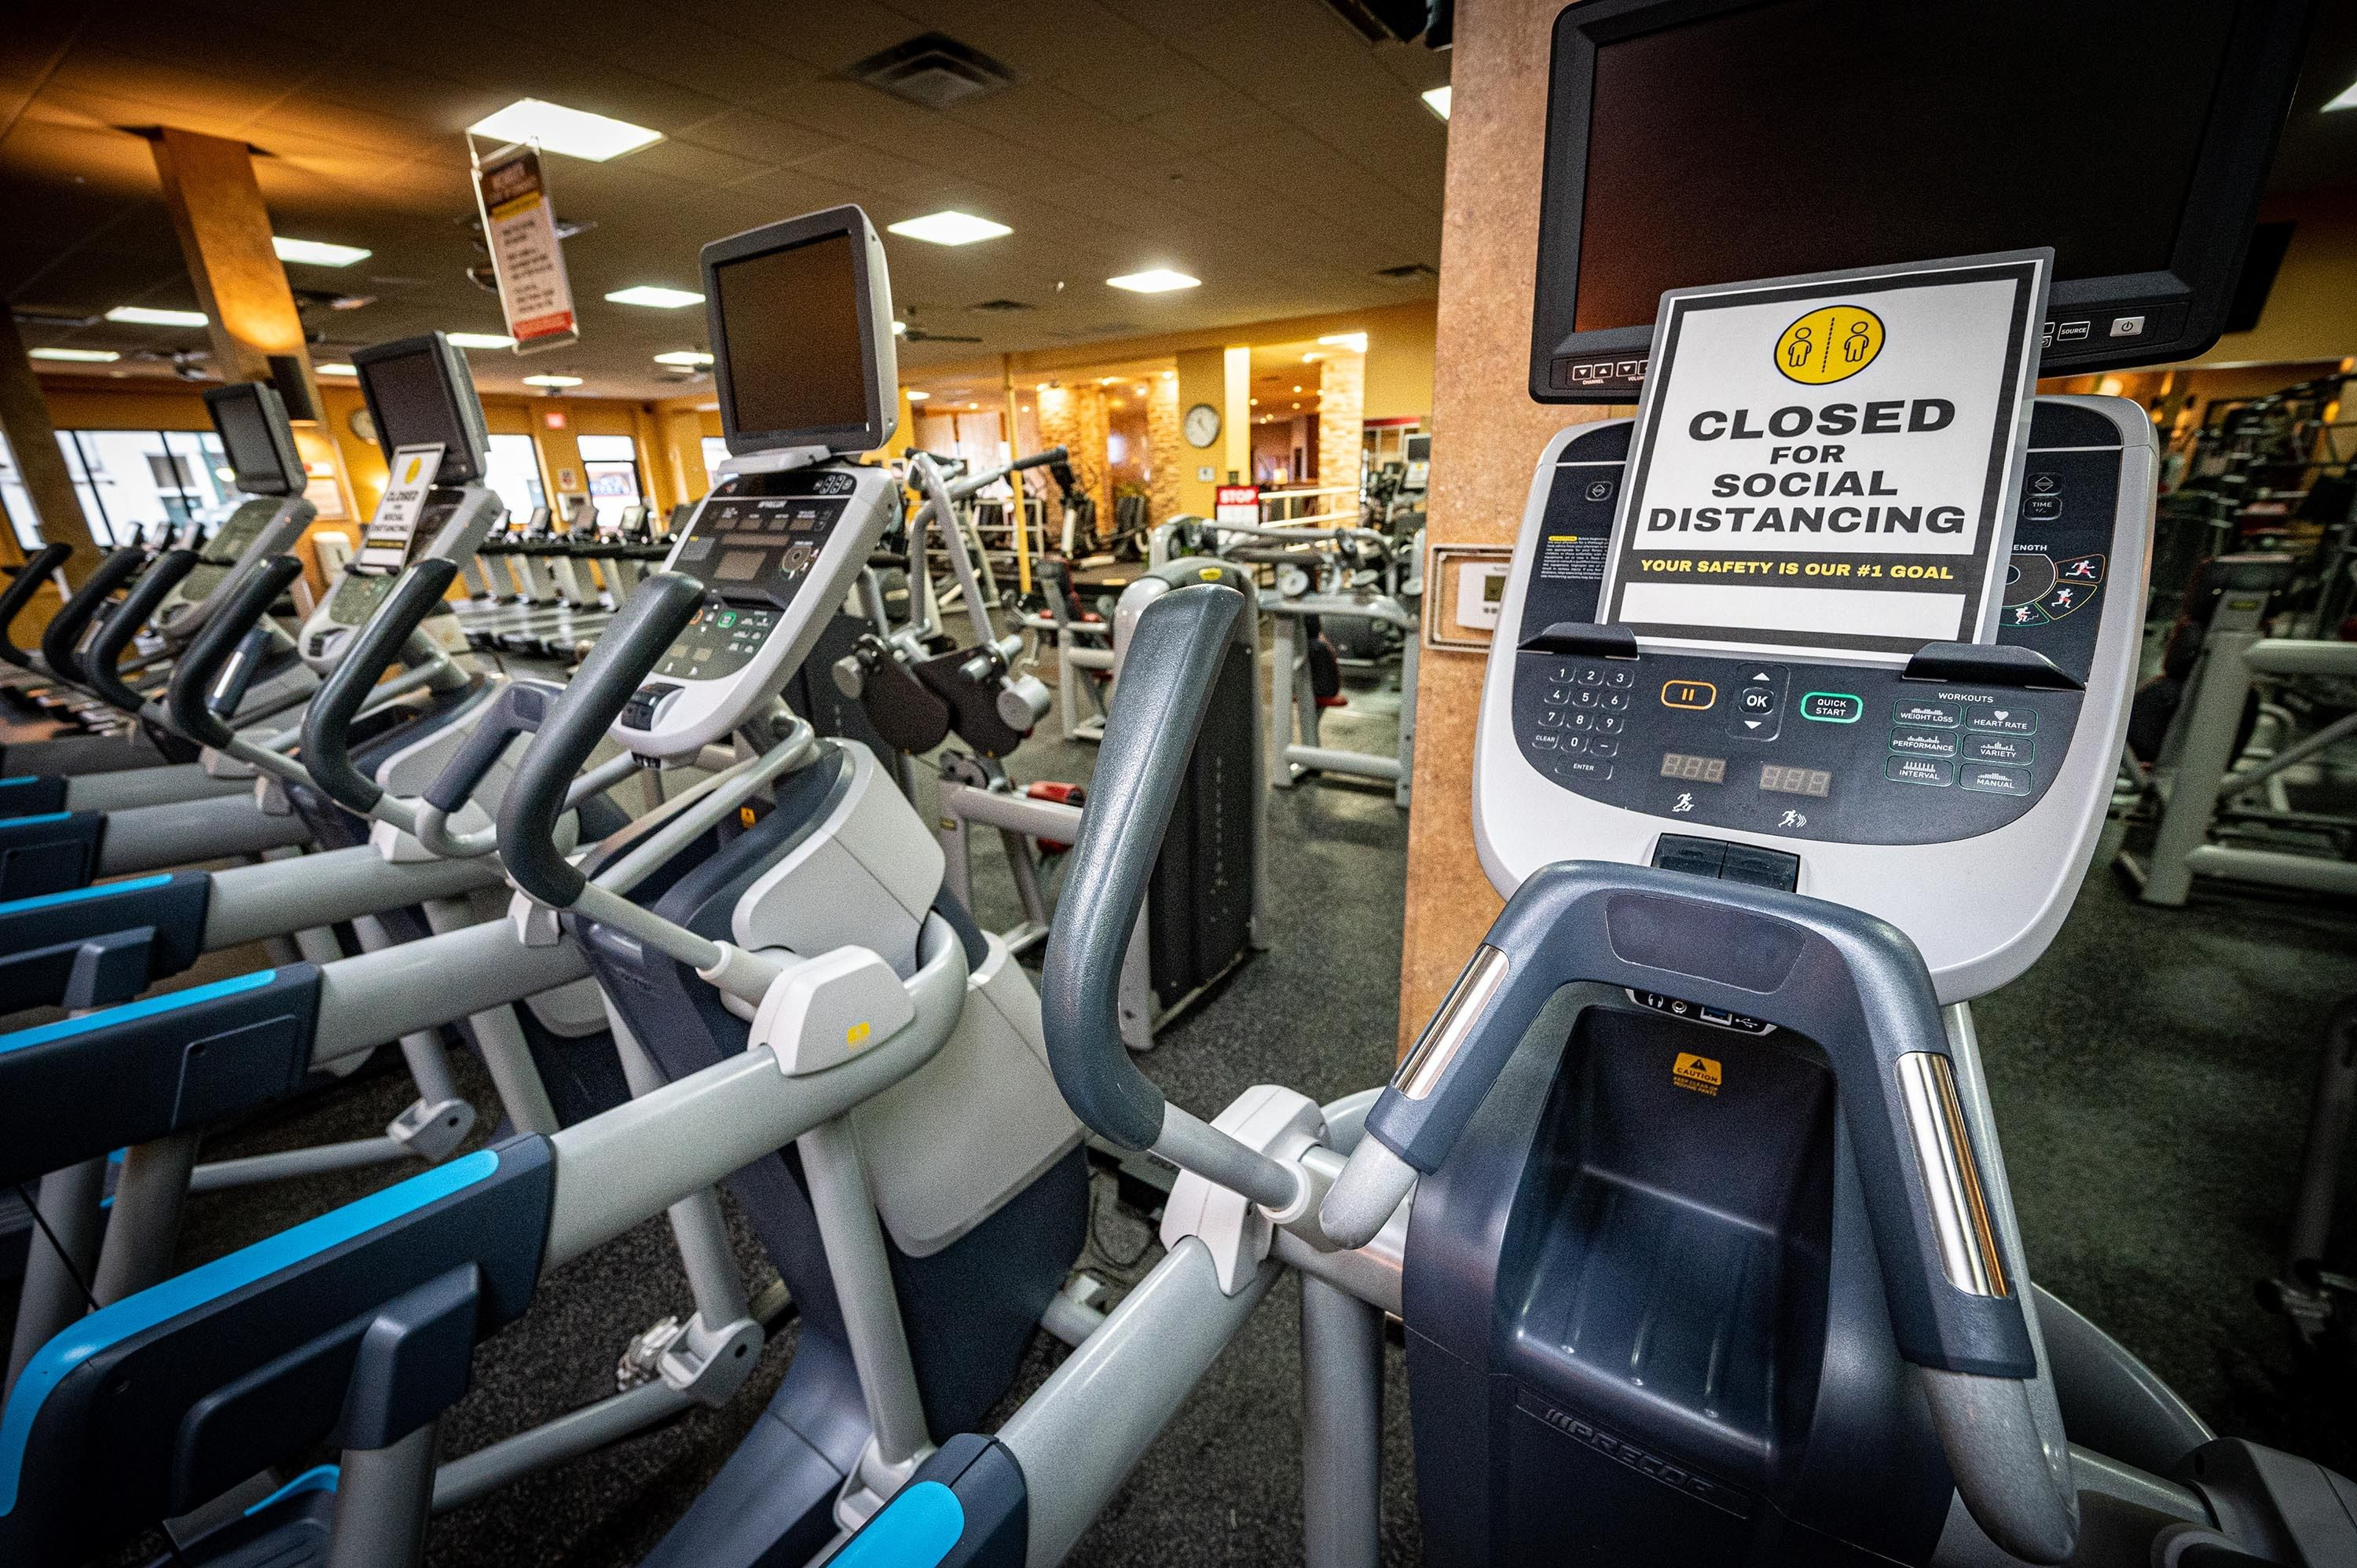 Social distancing signs on machines at Gold's Gym in East Northport, New York, on Aug. 19, 2020, ahead of reopening after the